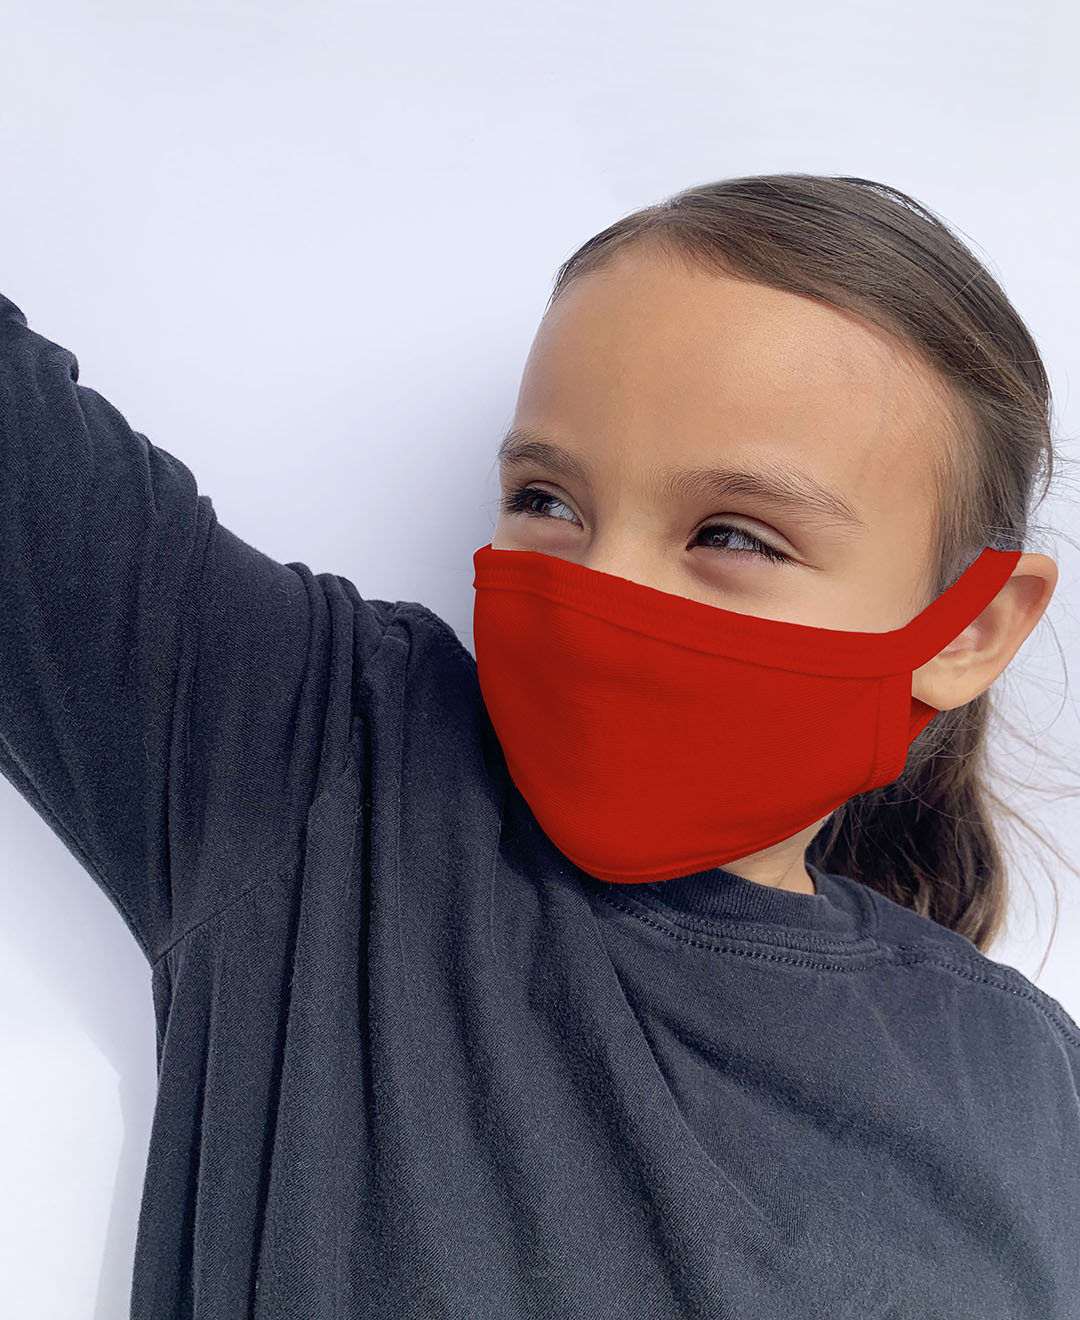 child wearing red face mask